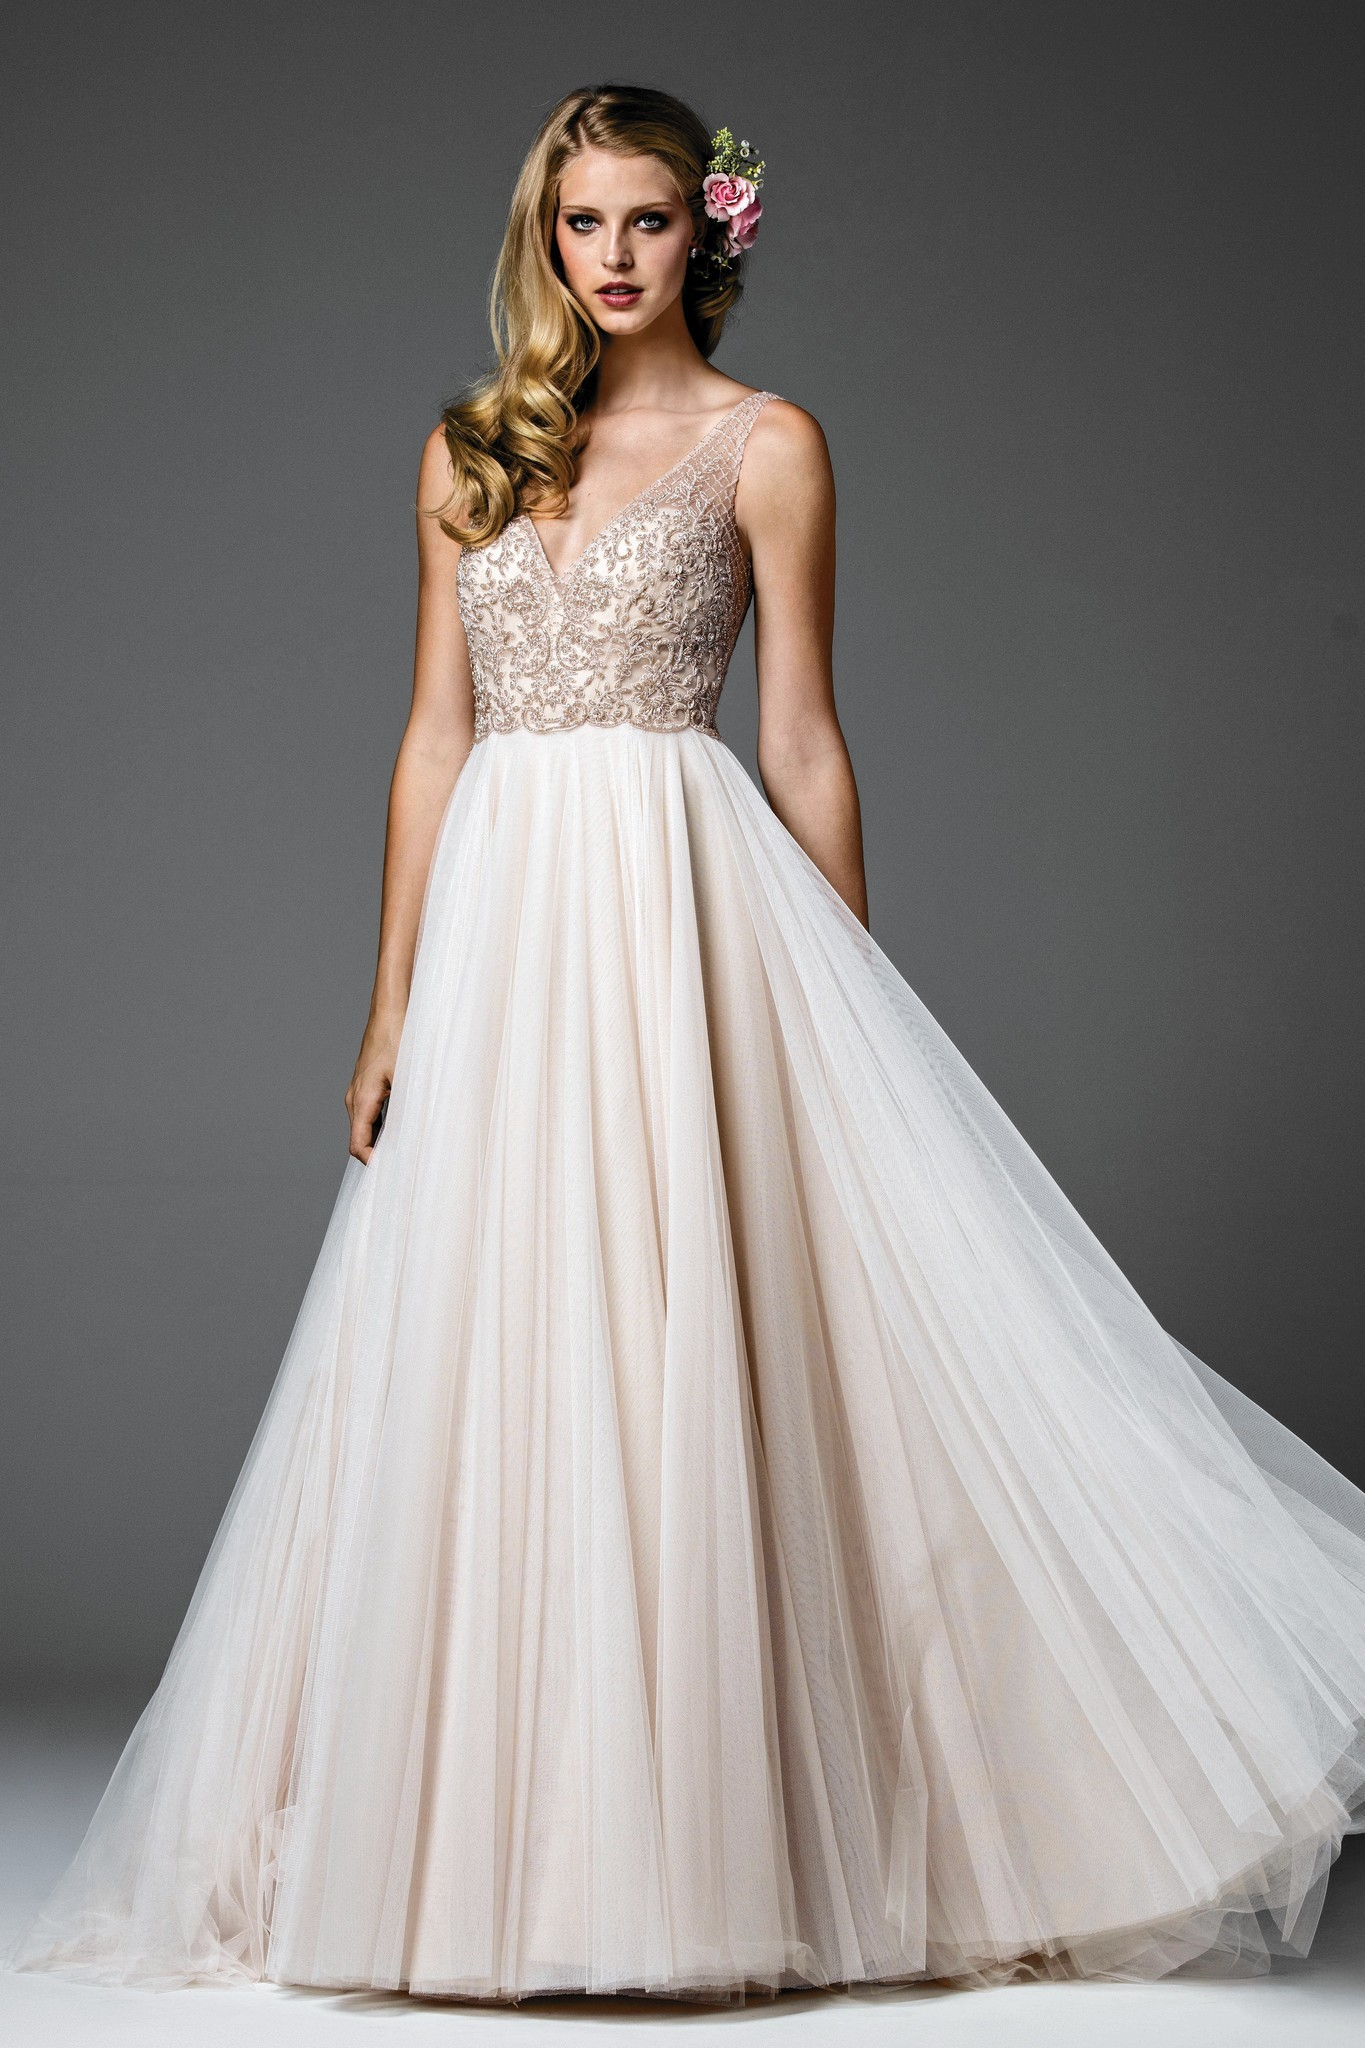 Bridal Fashion Week trends include ballgown skirts, separates, off ...